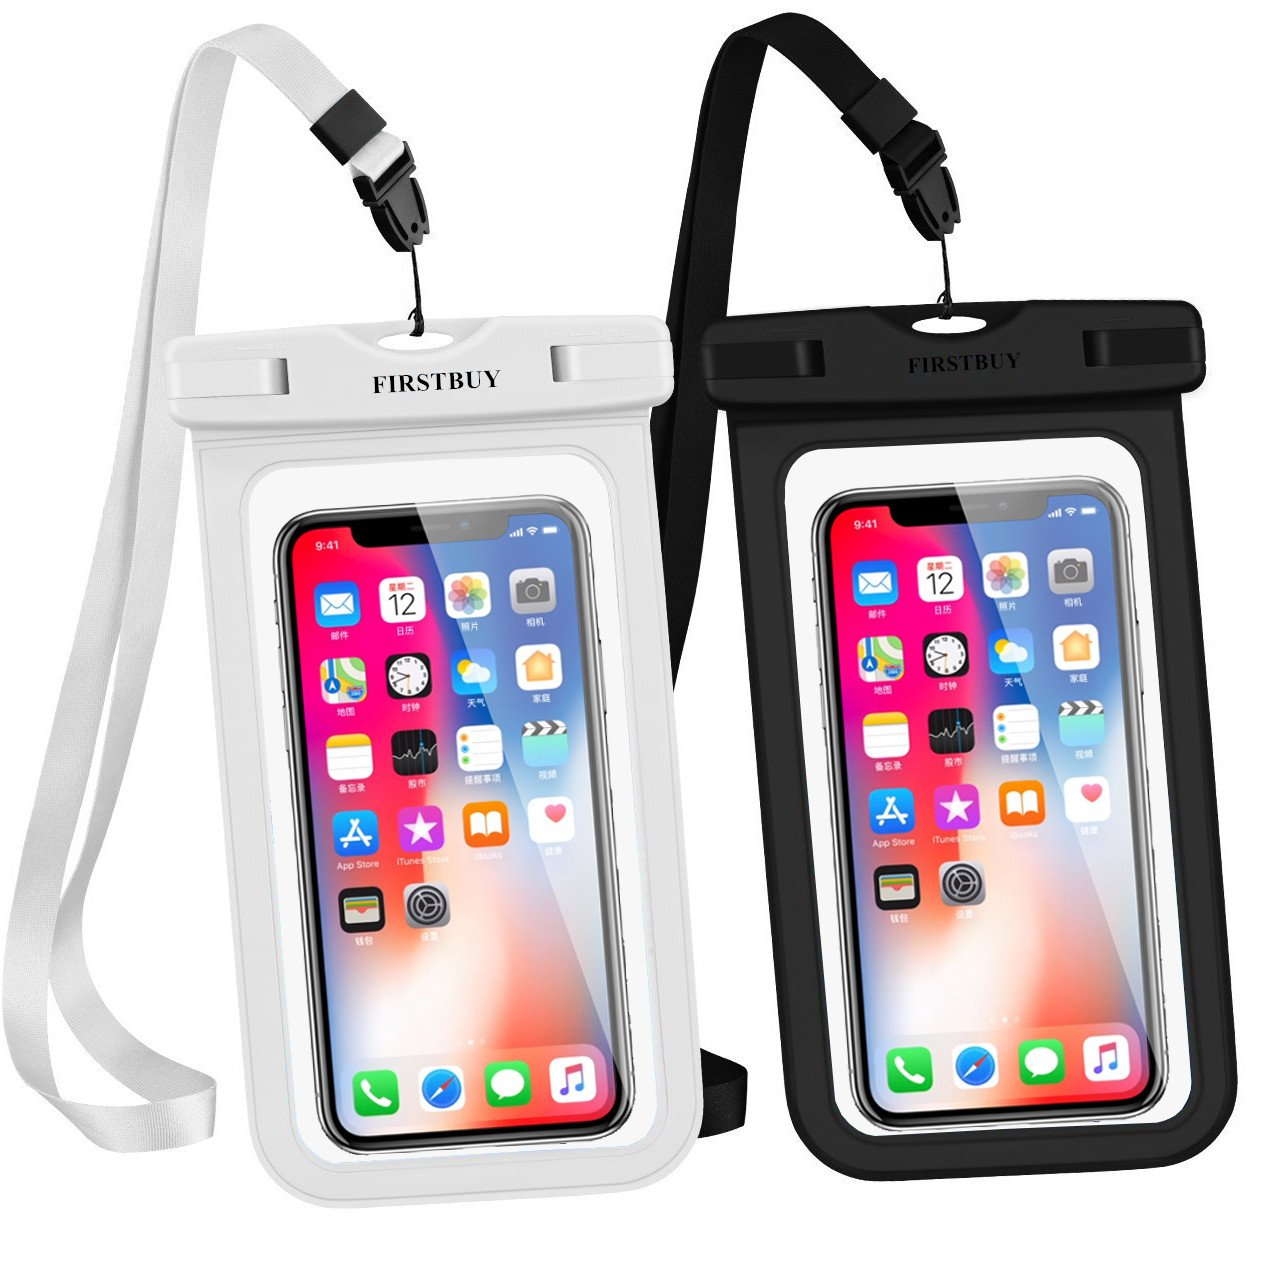 FIRSTBUY waterproof case, Universal Waterproof Phone Pouch Certified IPX8 Underwater Cellphone Case Dry Bag for iPhone X/8/8PLUS/7/7PLUS/6S Samsung Galaxy S9/S8/S7 HTC10 Google Sony Nokia (2 pack)